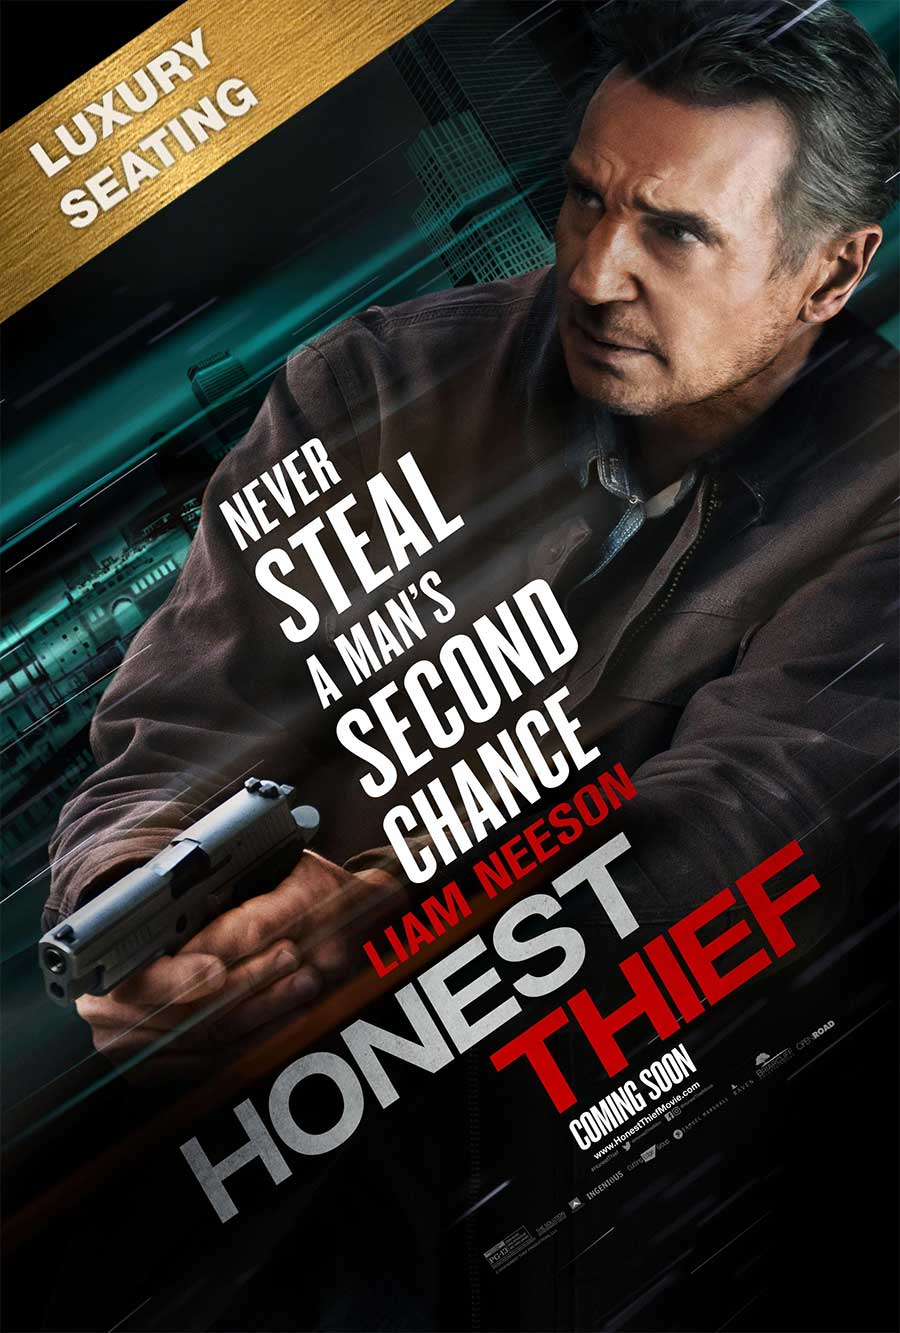 Poster for Honest Thief (LUX)